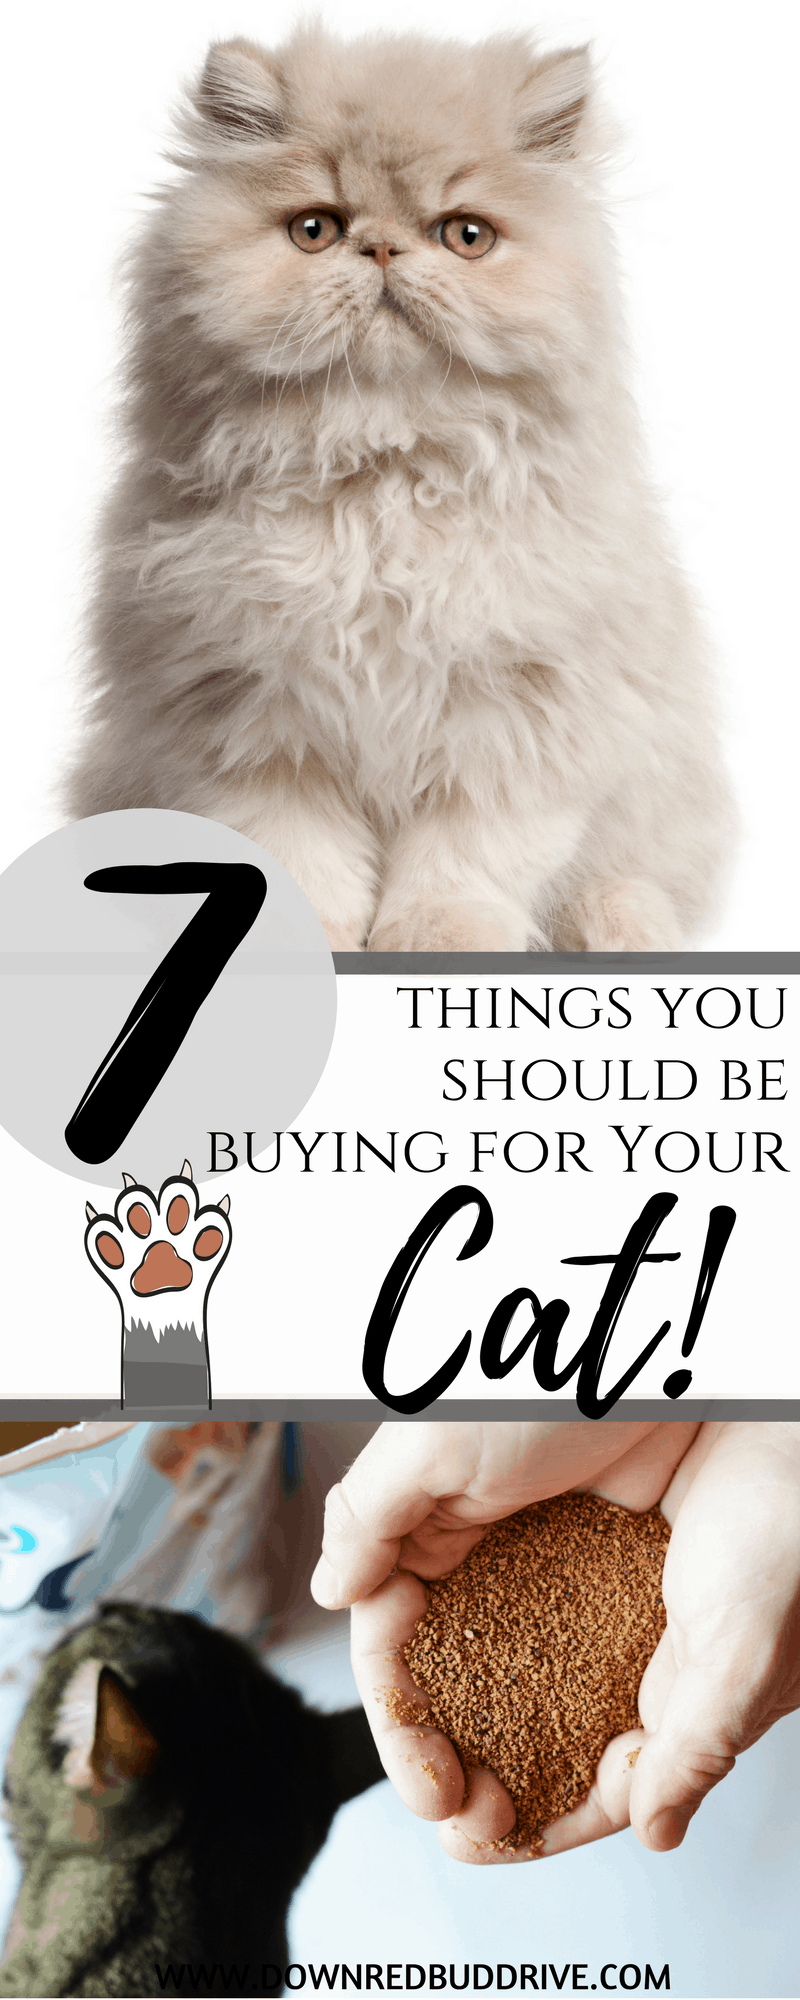 7 Things You Should Be Buying for Your Cat | Cat Items | Cat Care | Cat Lovers | Cat Must Haves | Best Cat Items | Best Cat Box | Best Cat Toys | Cat Toys | Down Redbud Drive #ad #LitterMaidWalnut #LitterMaid #catlovers #catfood